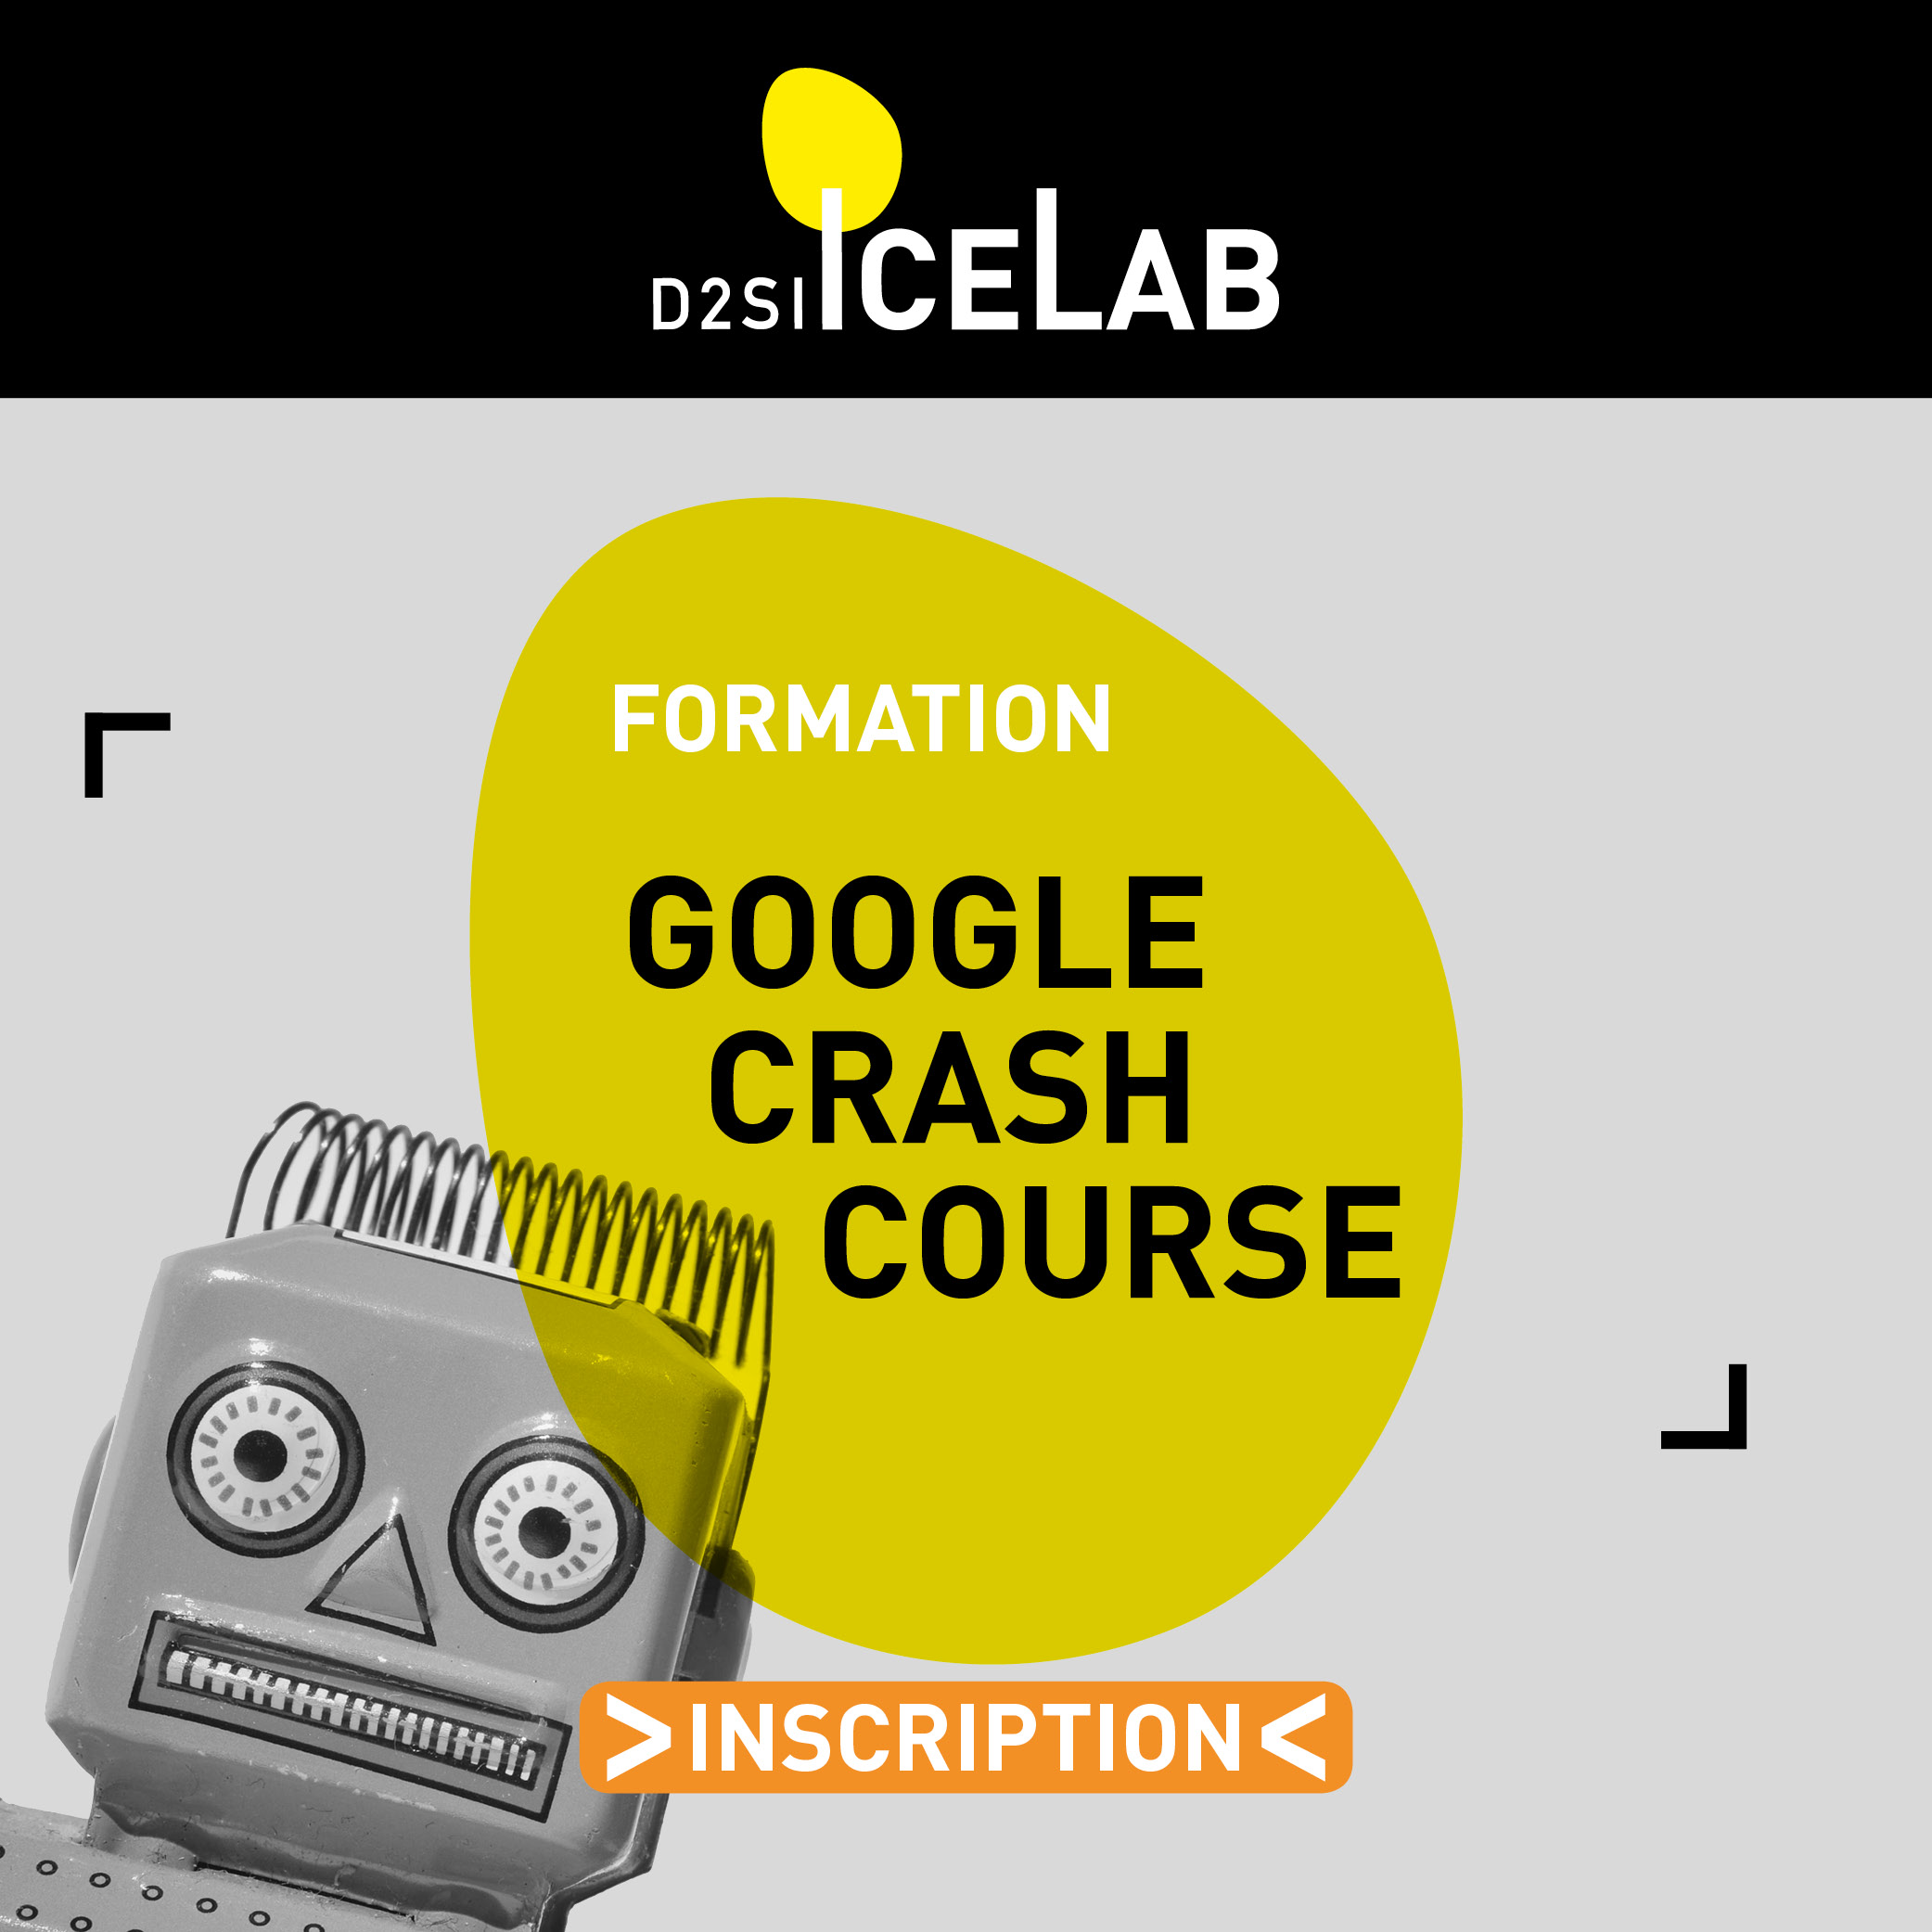 Google crash course ICELAB